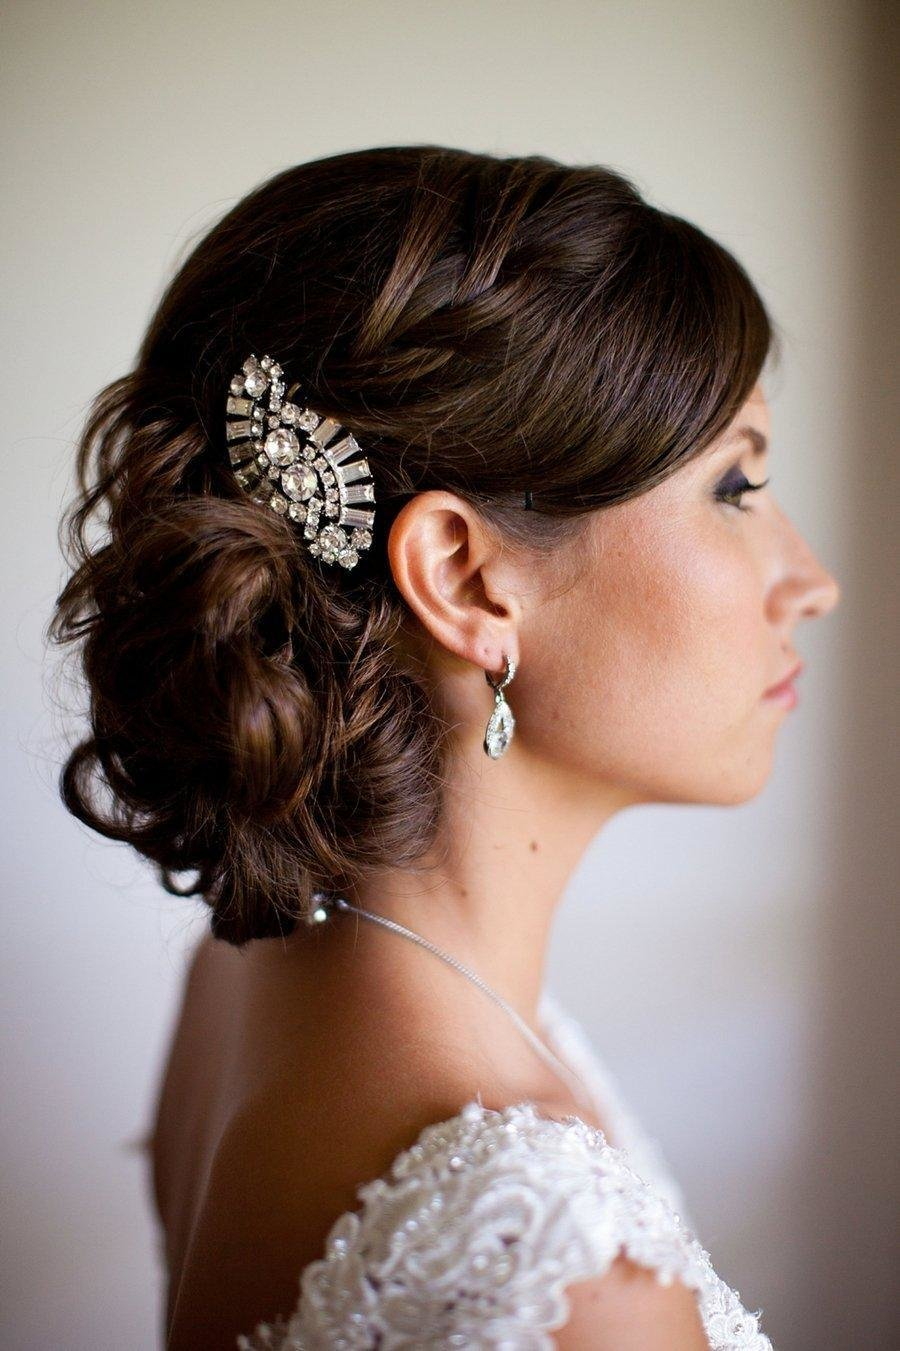 New 10 Chic Unique Updo Wedding Hairstyles Weddbook Ideas With Pictures